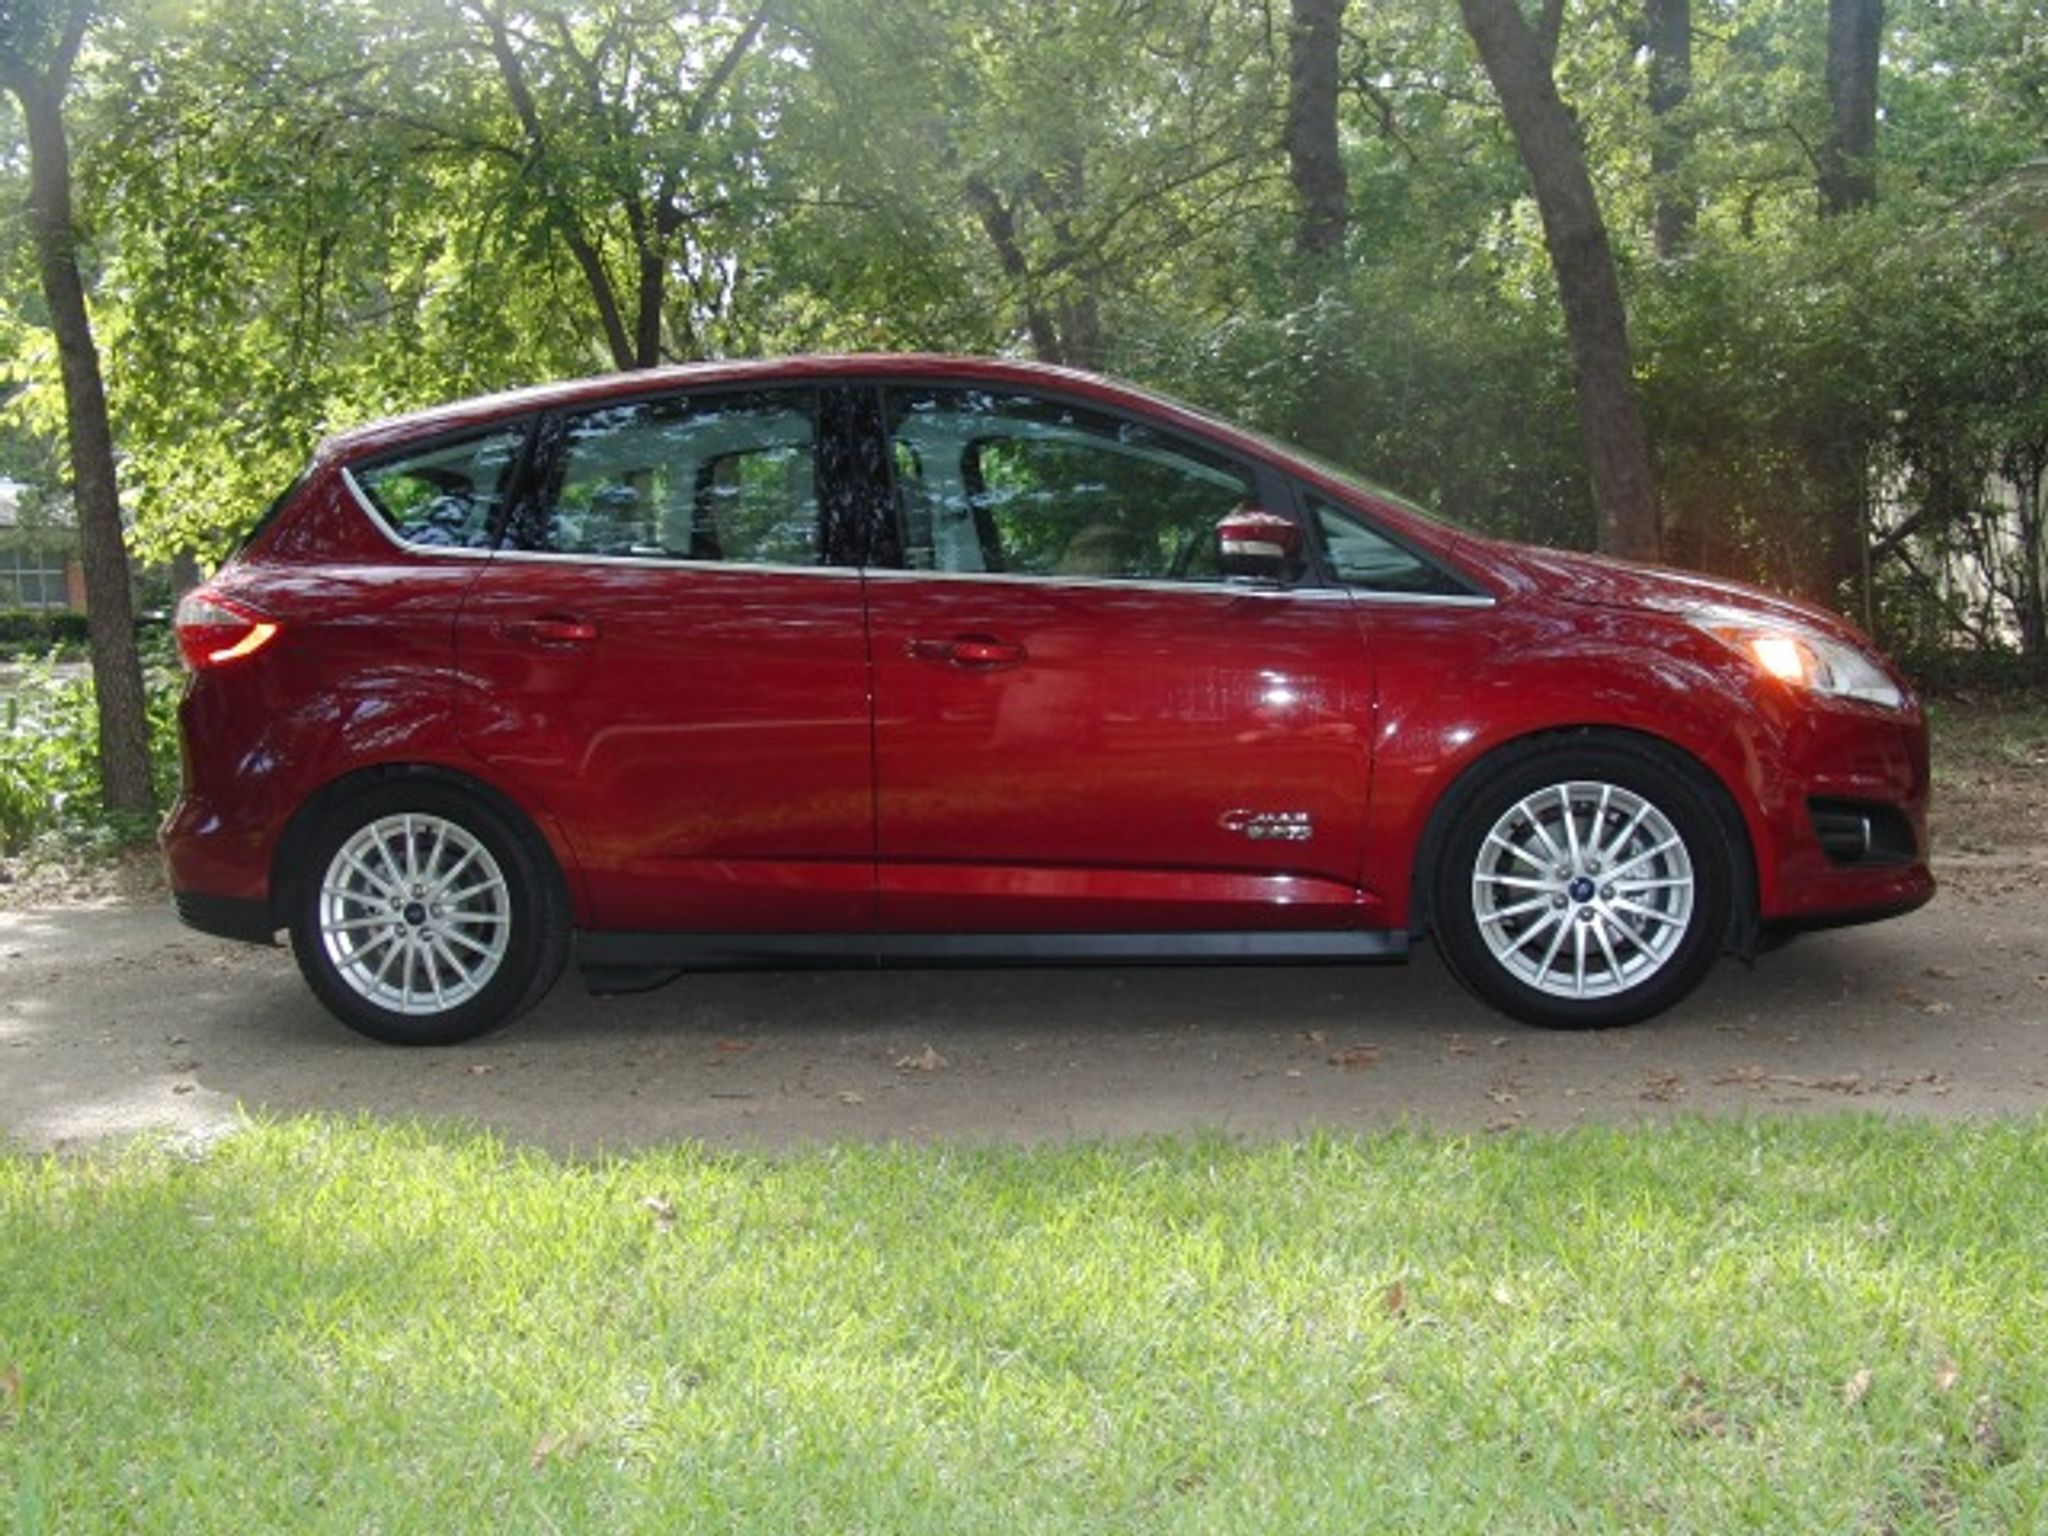 COOK Car Review 100 MPGe with the 2014 Ford C Max Energi